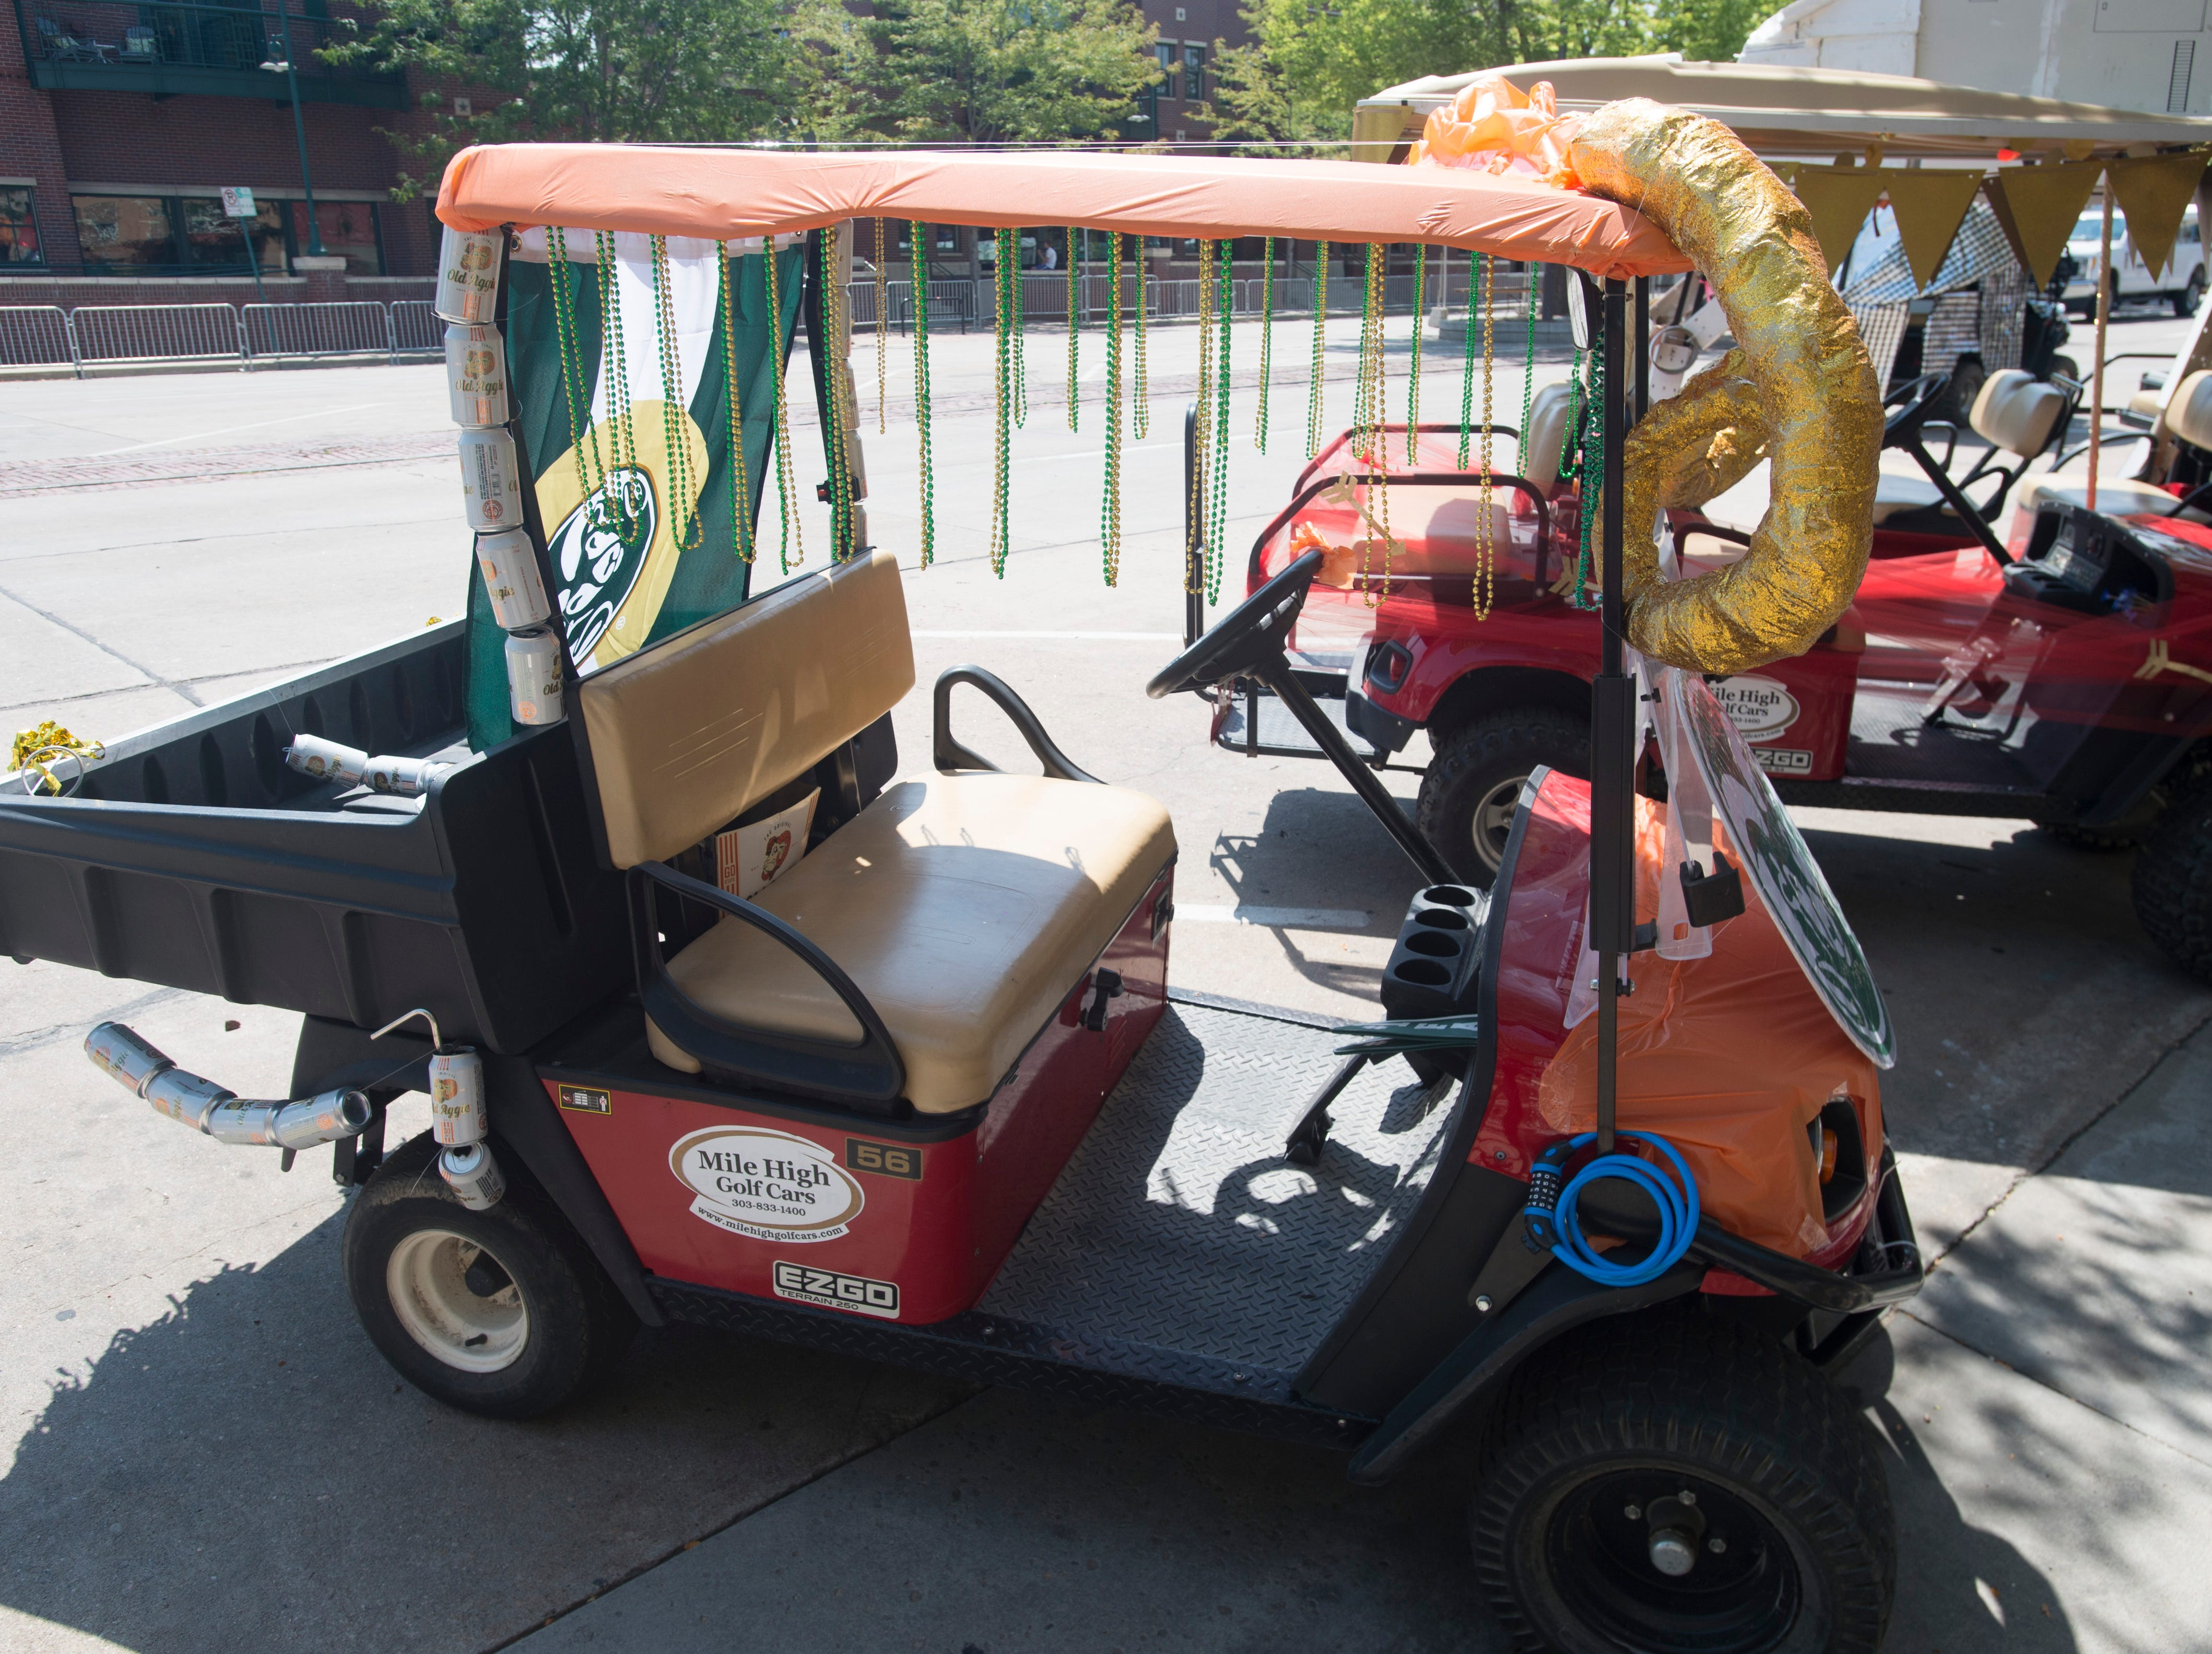 Golf Cart 10: Vote for your favorite NewWestFest decorated golf cart.